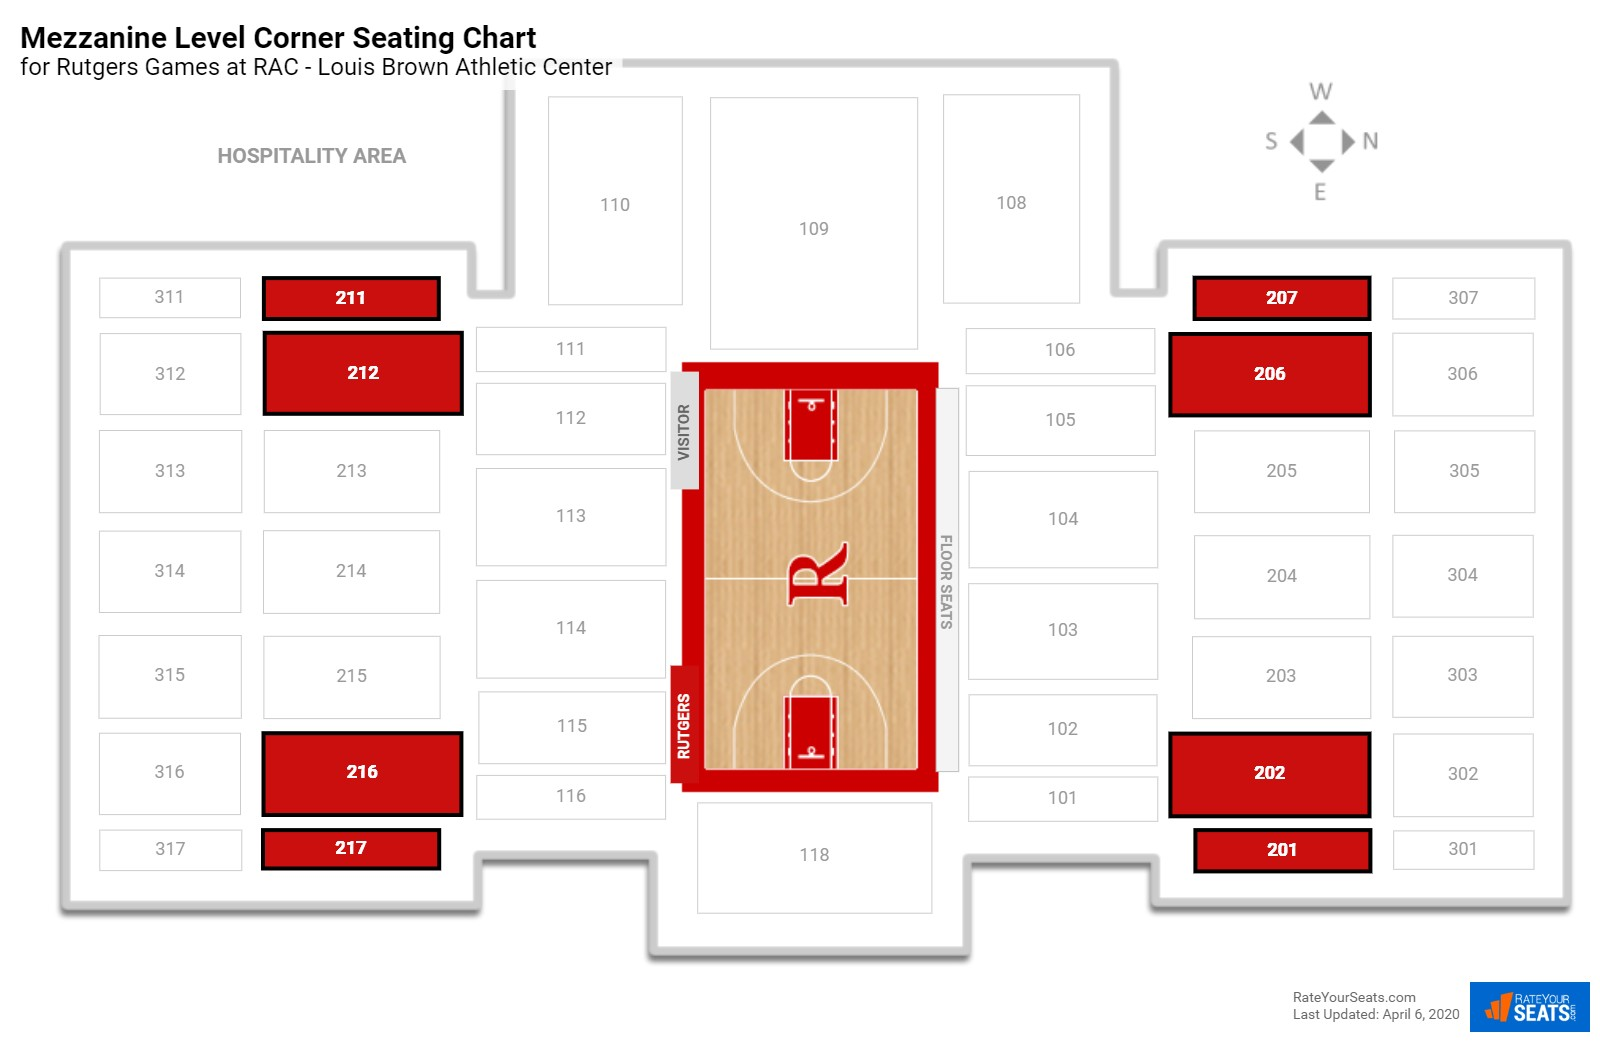 RAC - Louis Brown Athletic Center Mezzanine Level Corne seating chart